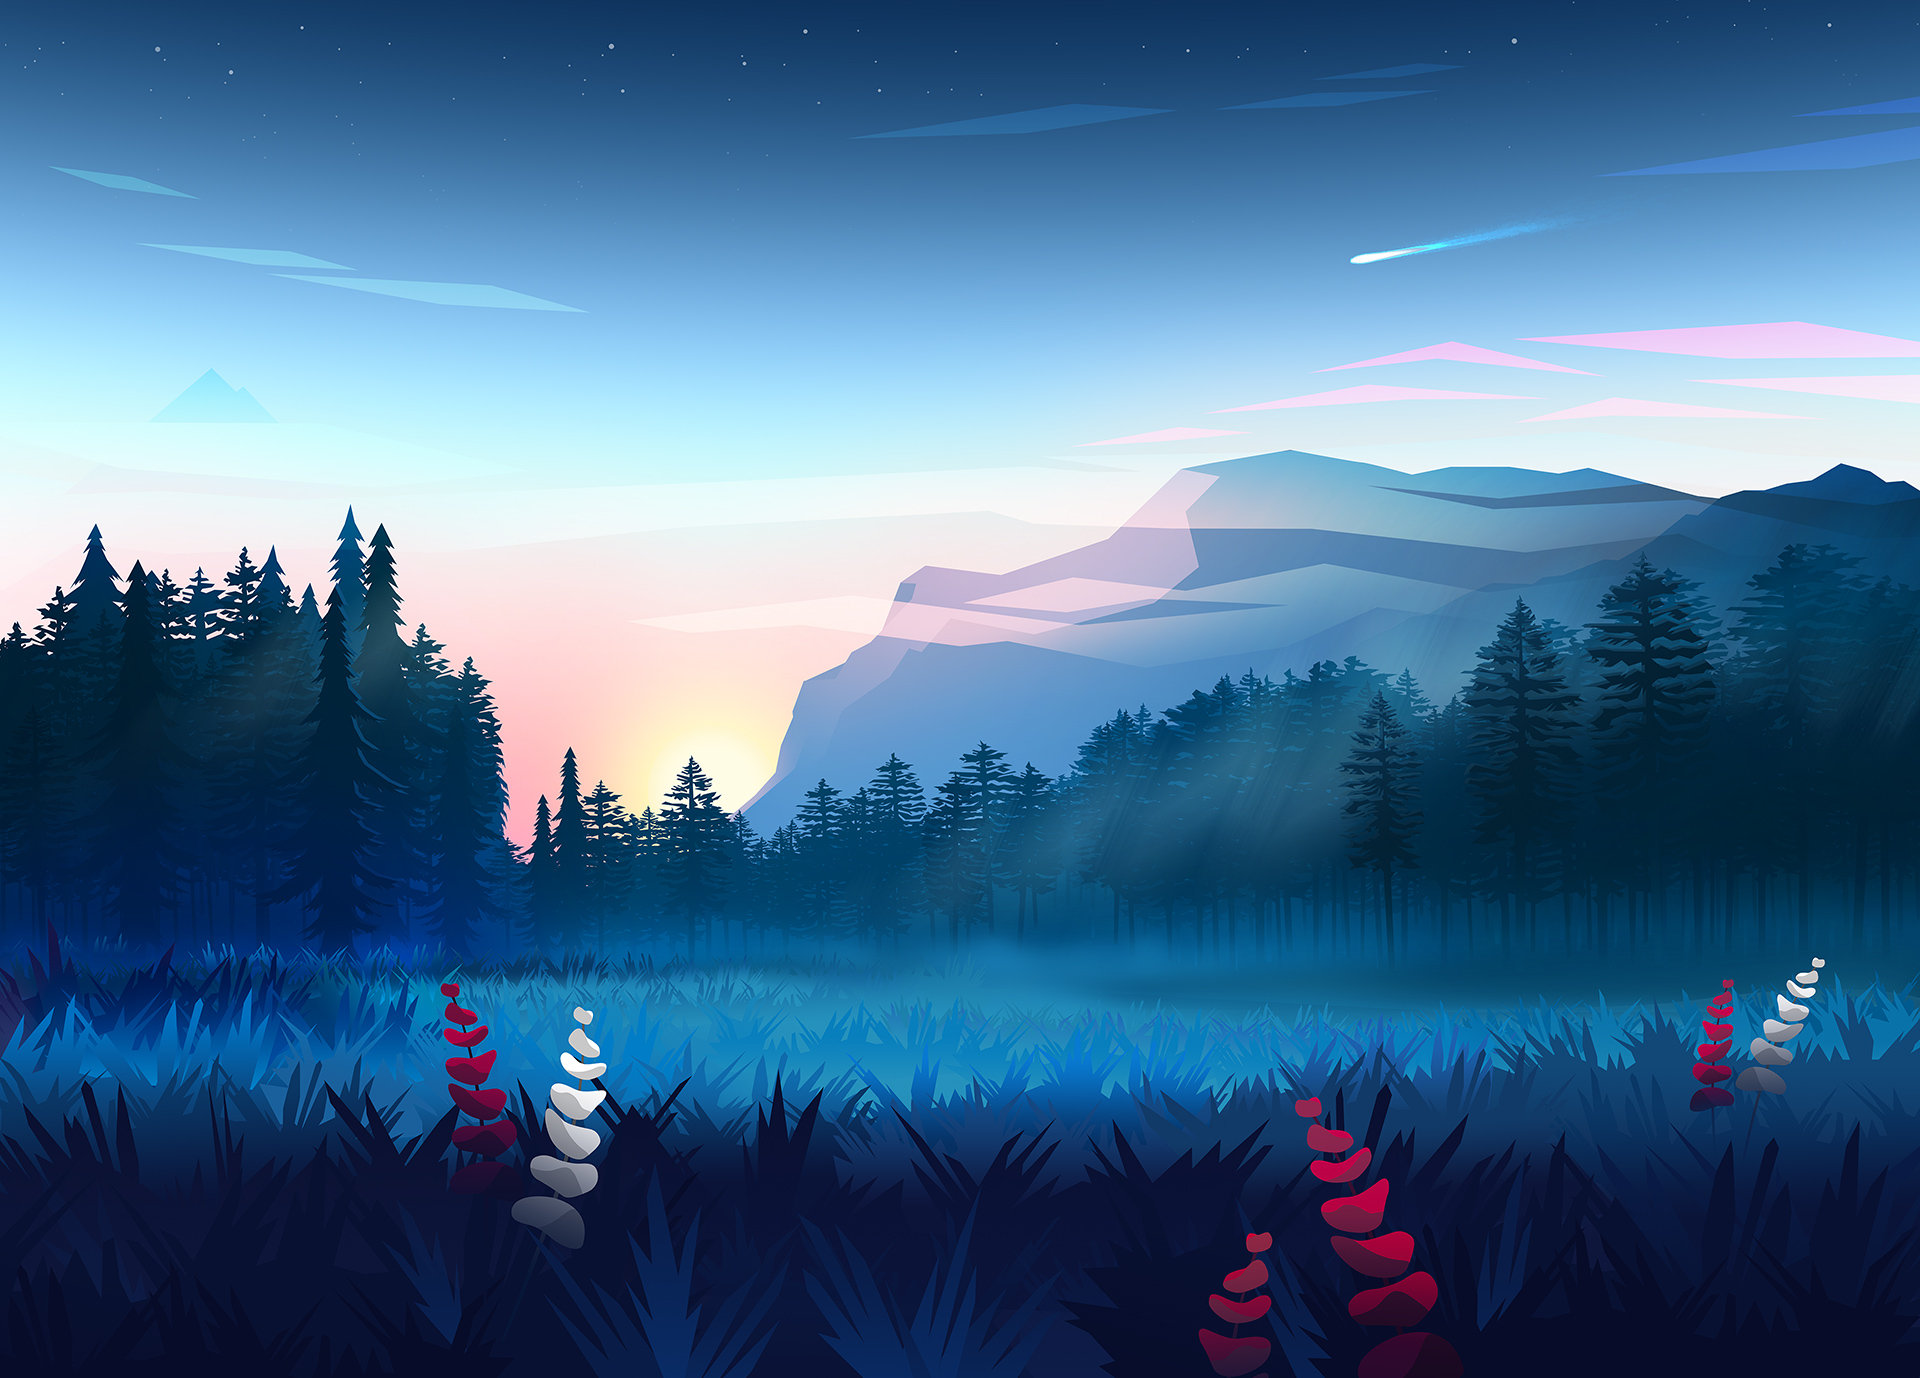 Mountains Digital Art Minimalist, HD Artist, 4k Wallpapers ...